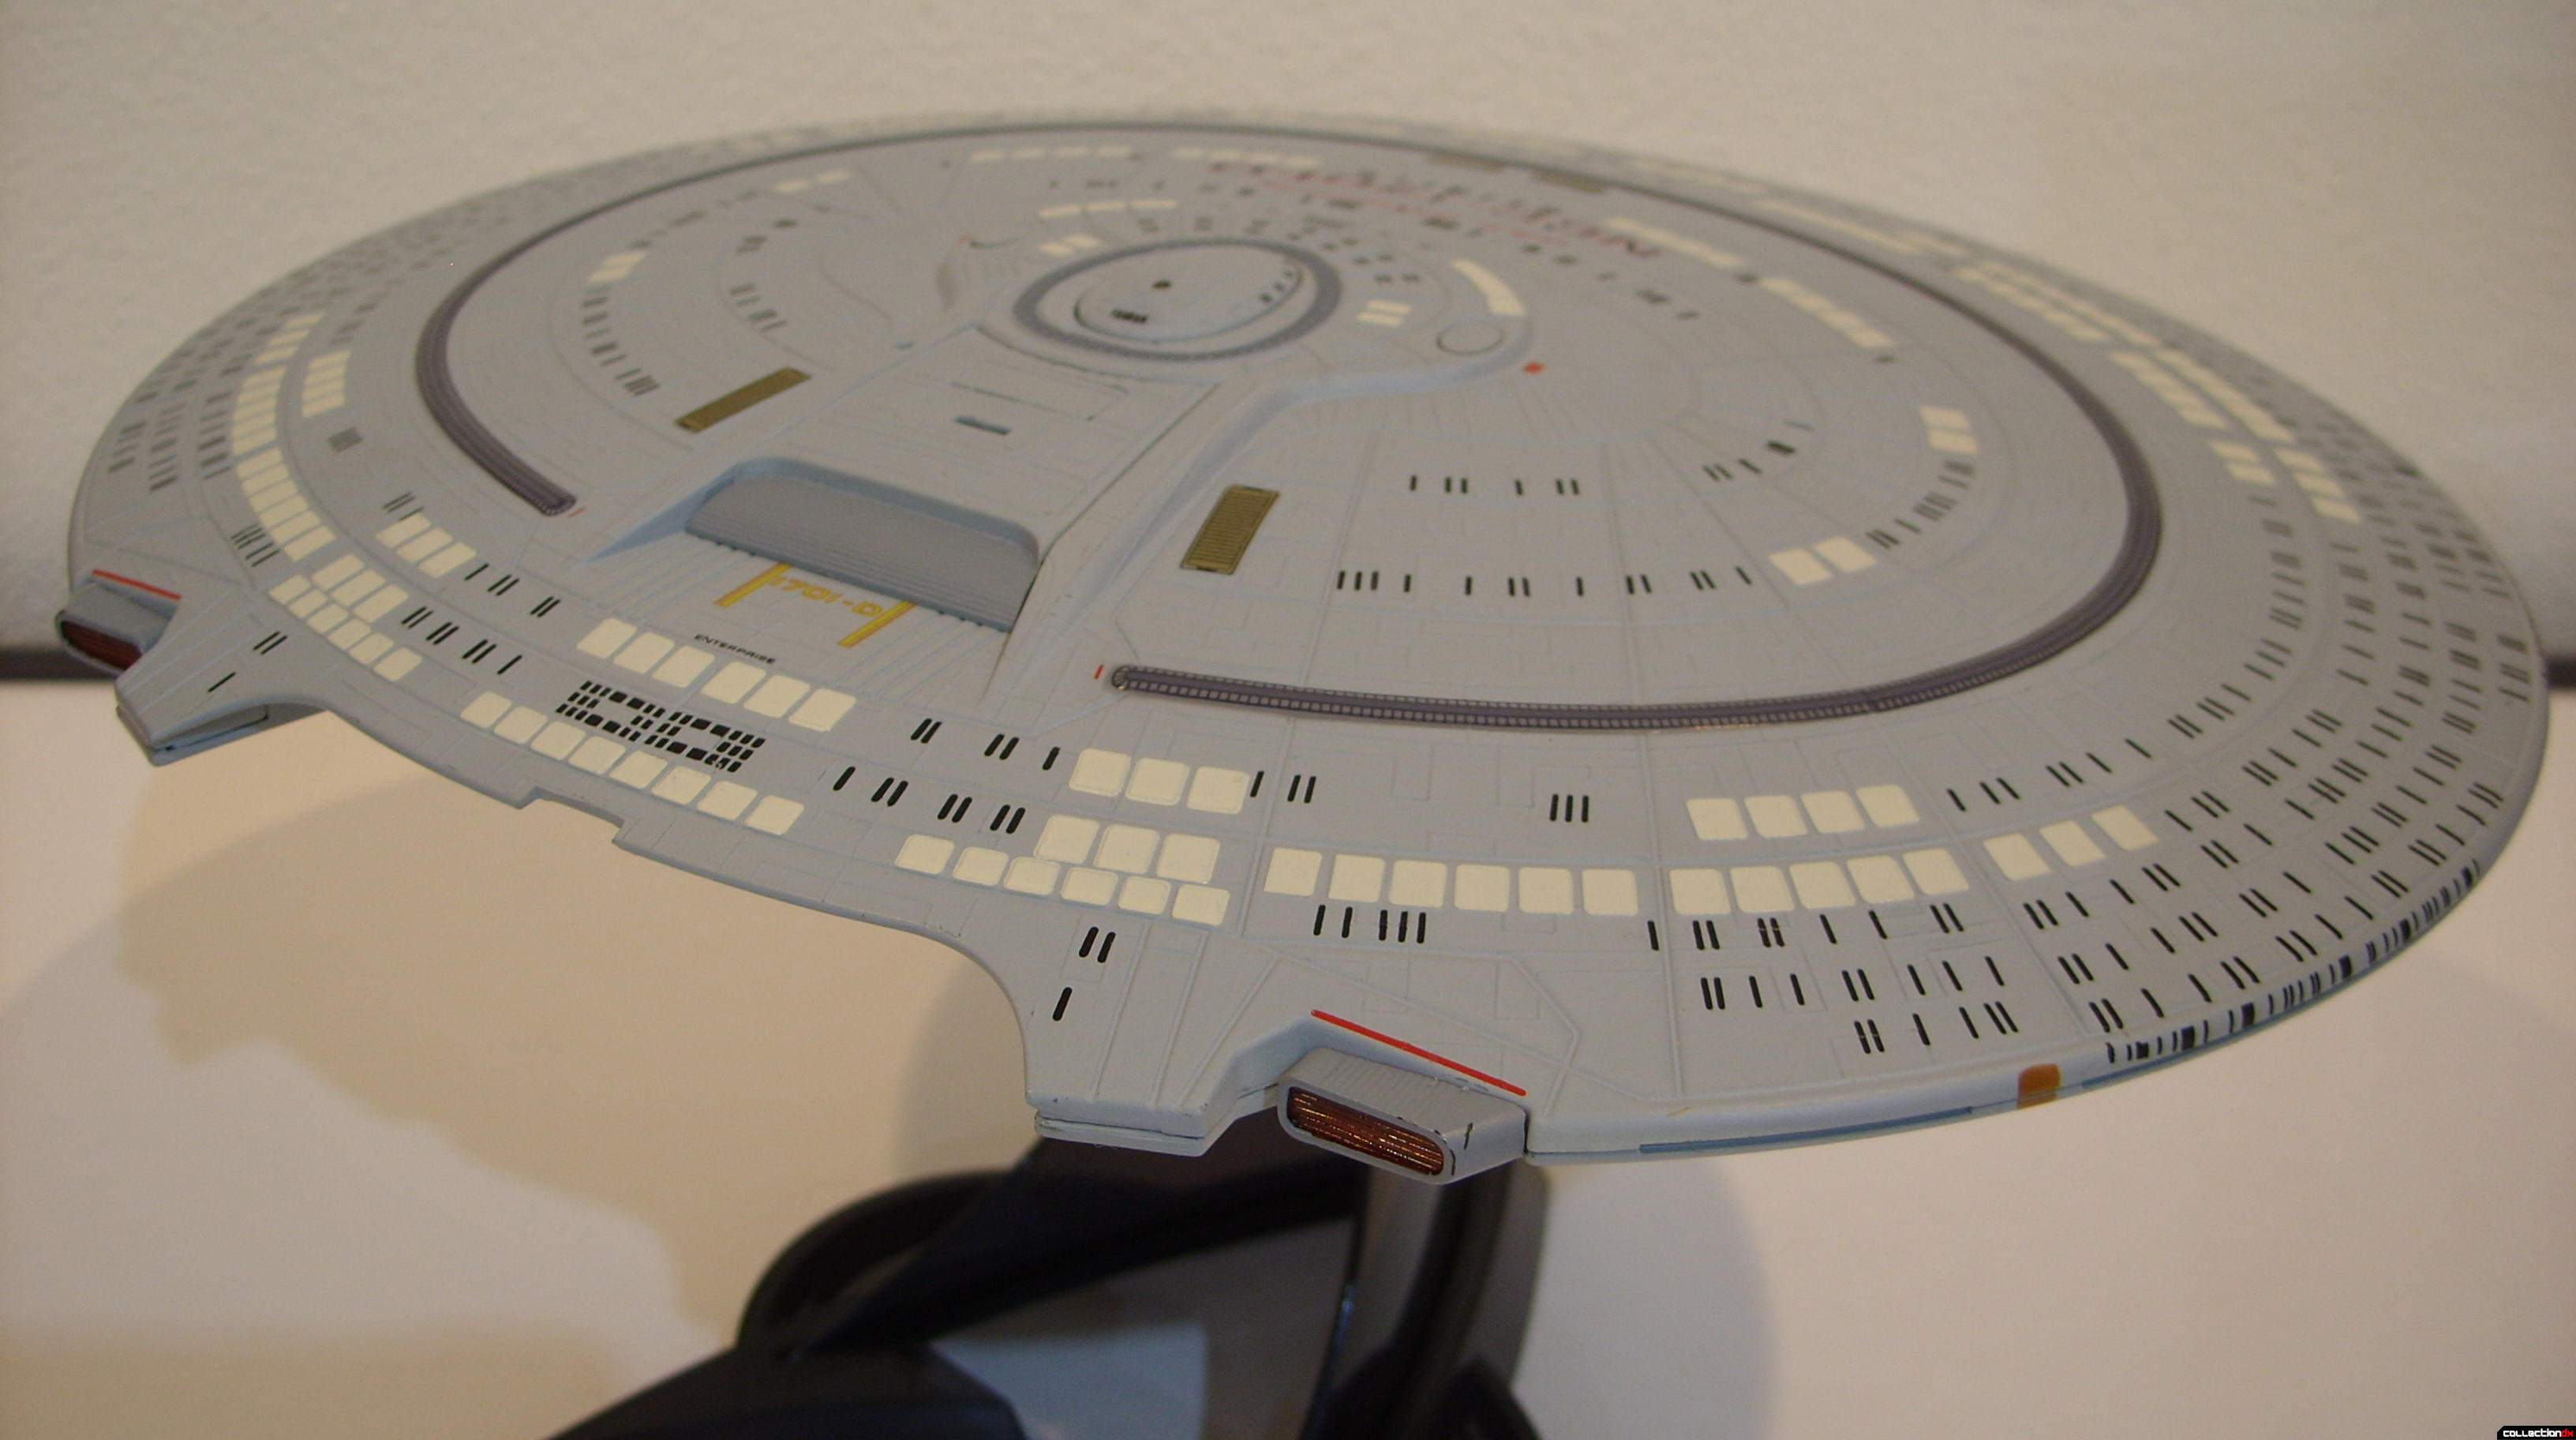 Starship Legends U.S.S. Enterprise-D (Saucer Section, aft-dorsal)